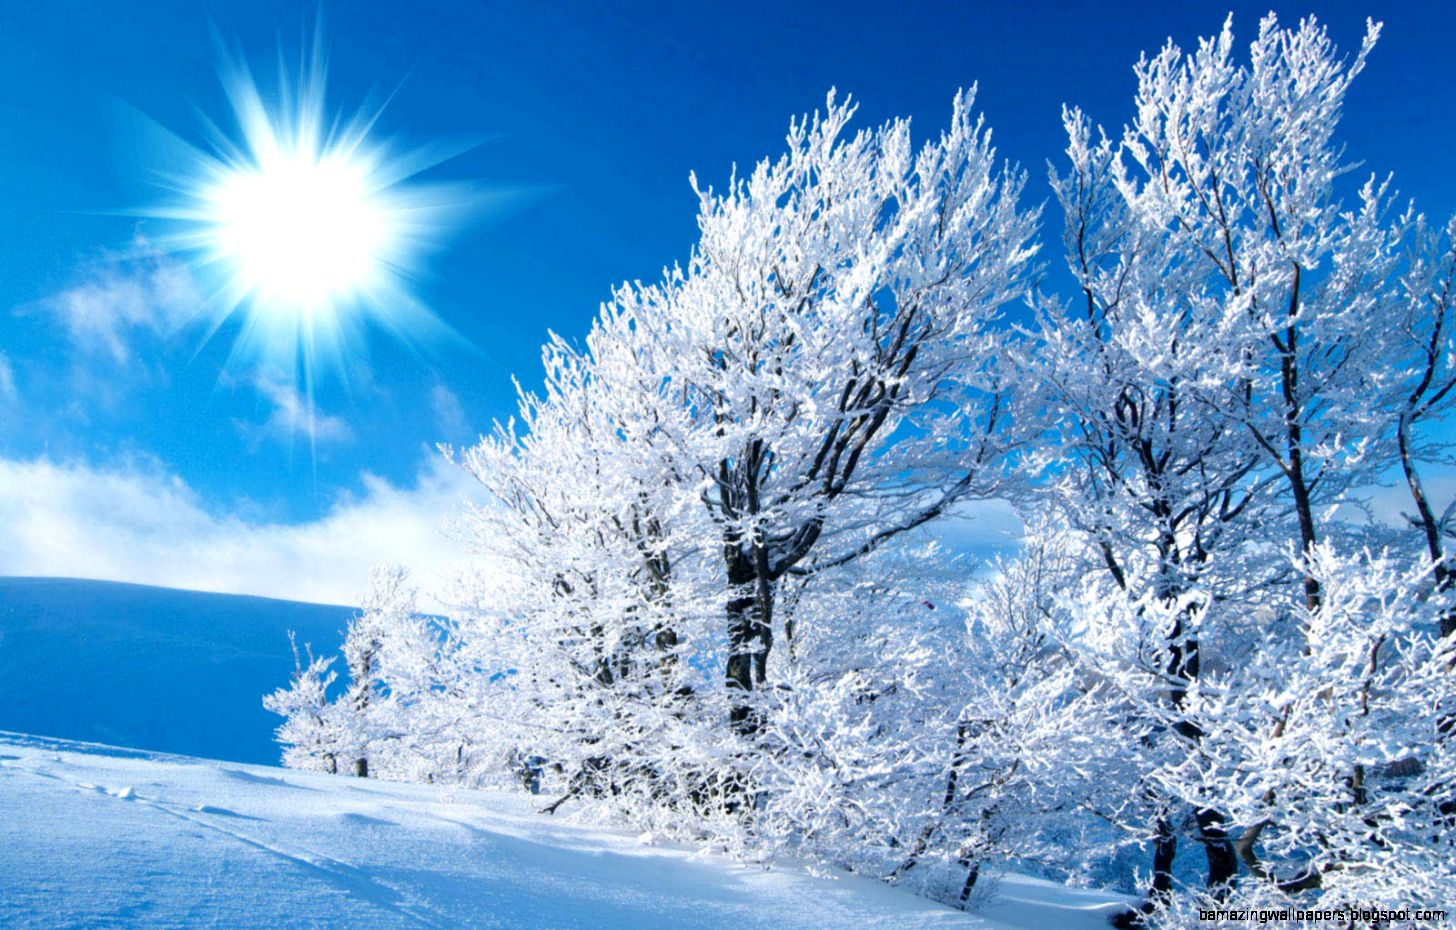 Winter Season Wallpaper 6984987